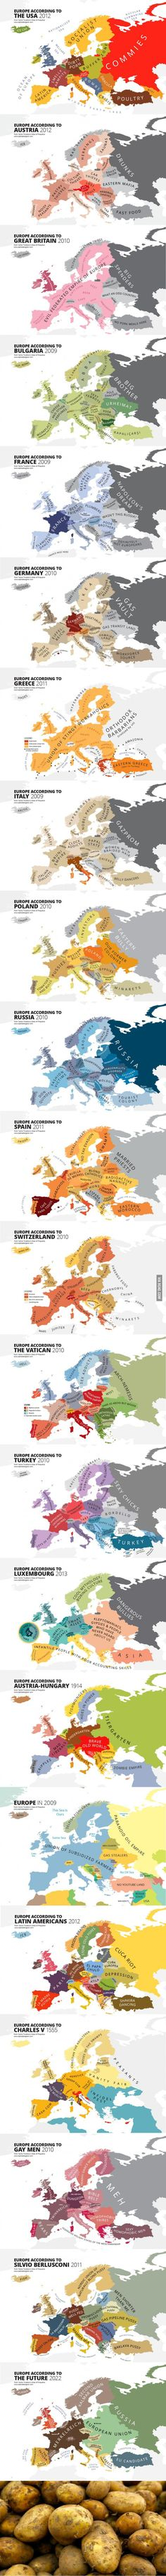 Silvio Berlusconi has the best view of Europe<<I wonder if all of these are accurate as to how they view it, becaue that's exactly how the US sees europe